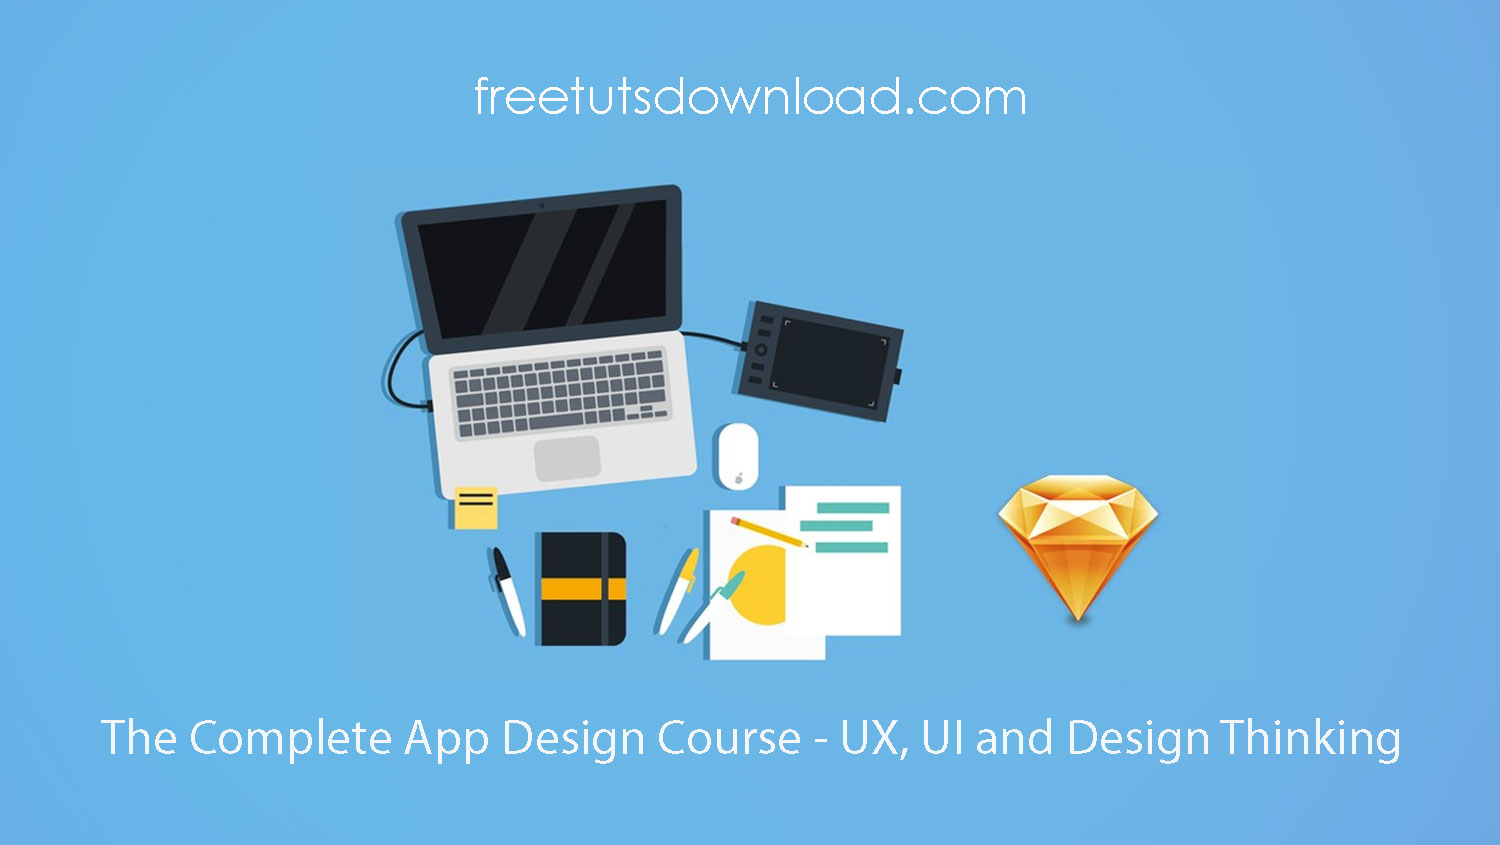 The Complete App Design Course - UX, UI and Design Thinking free download